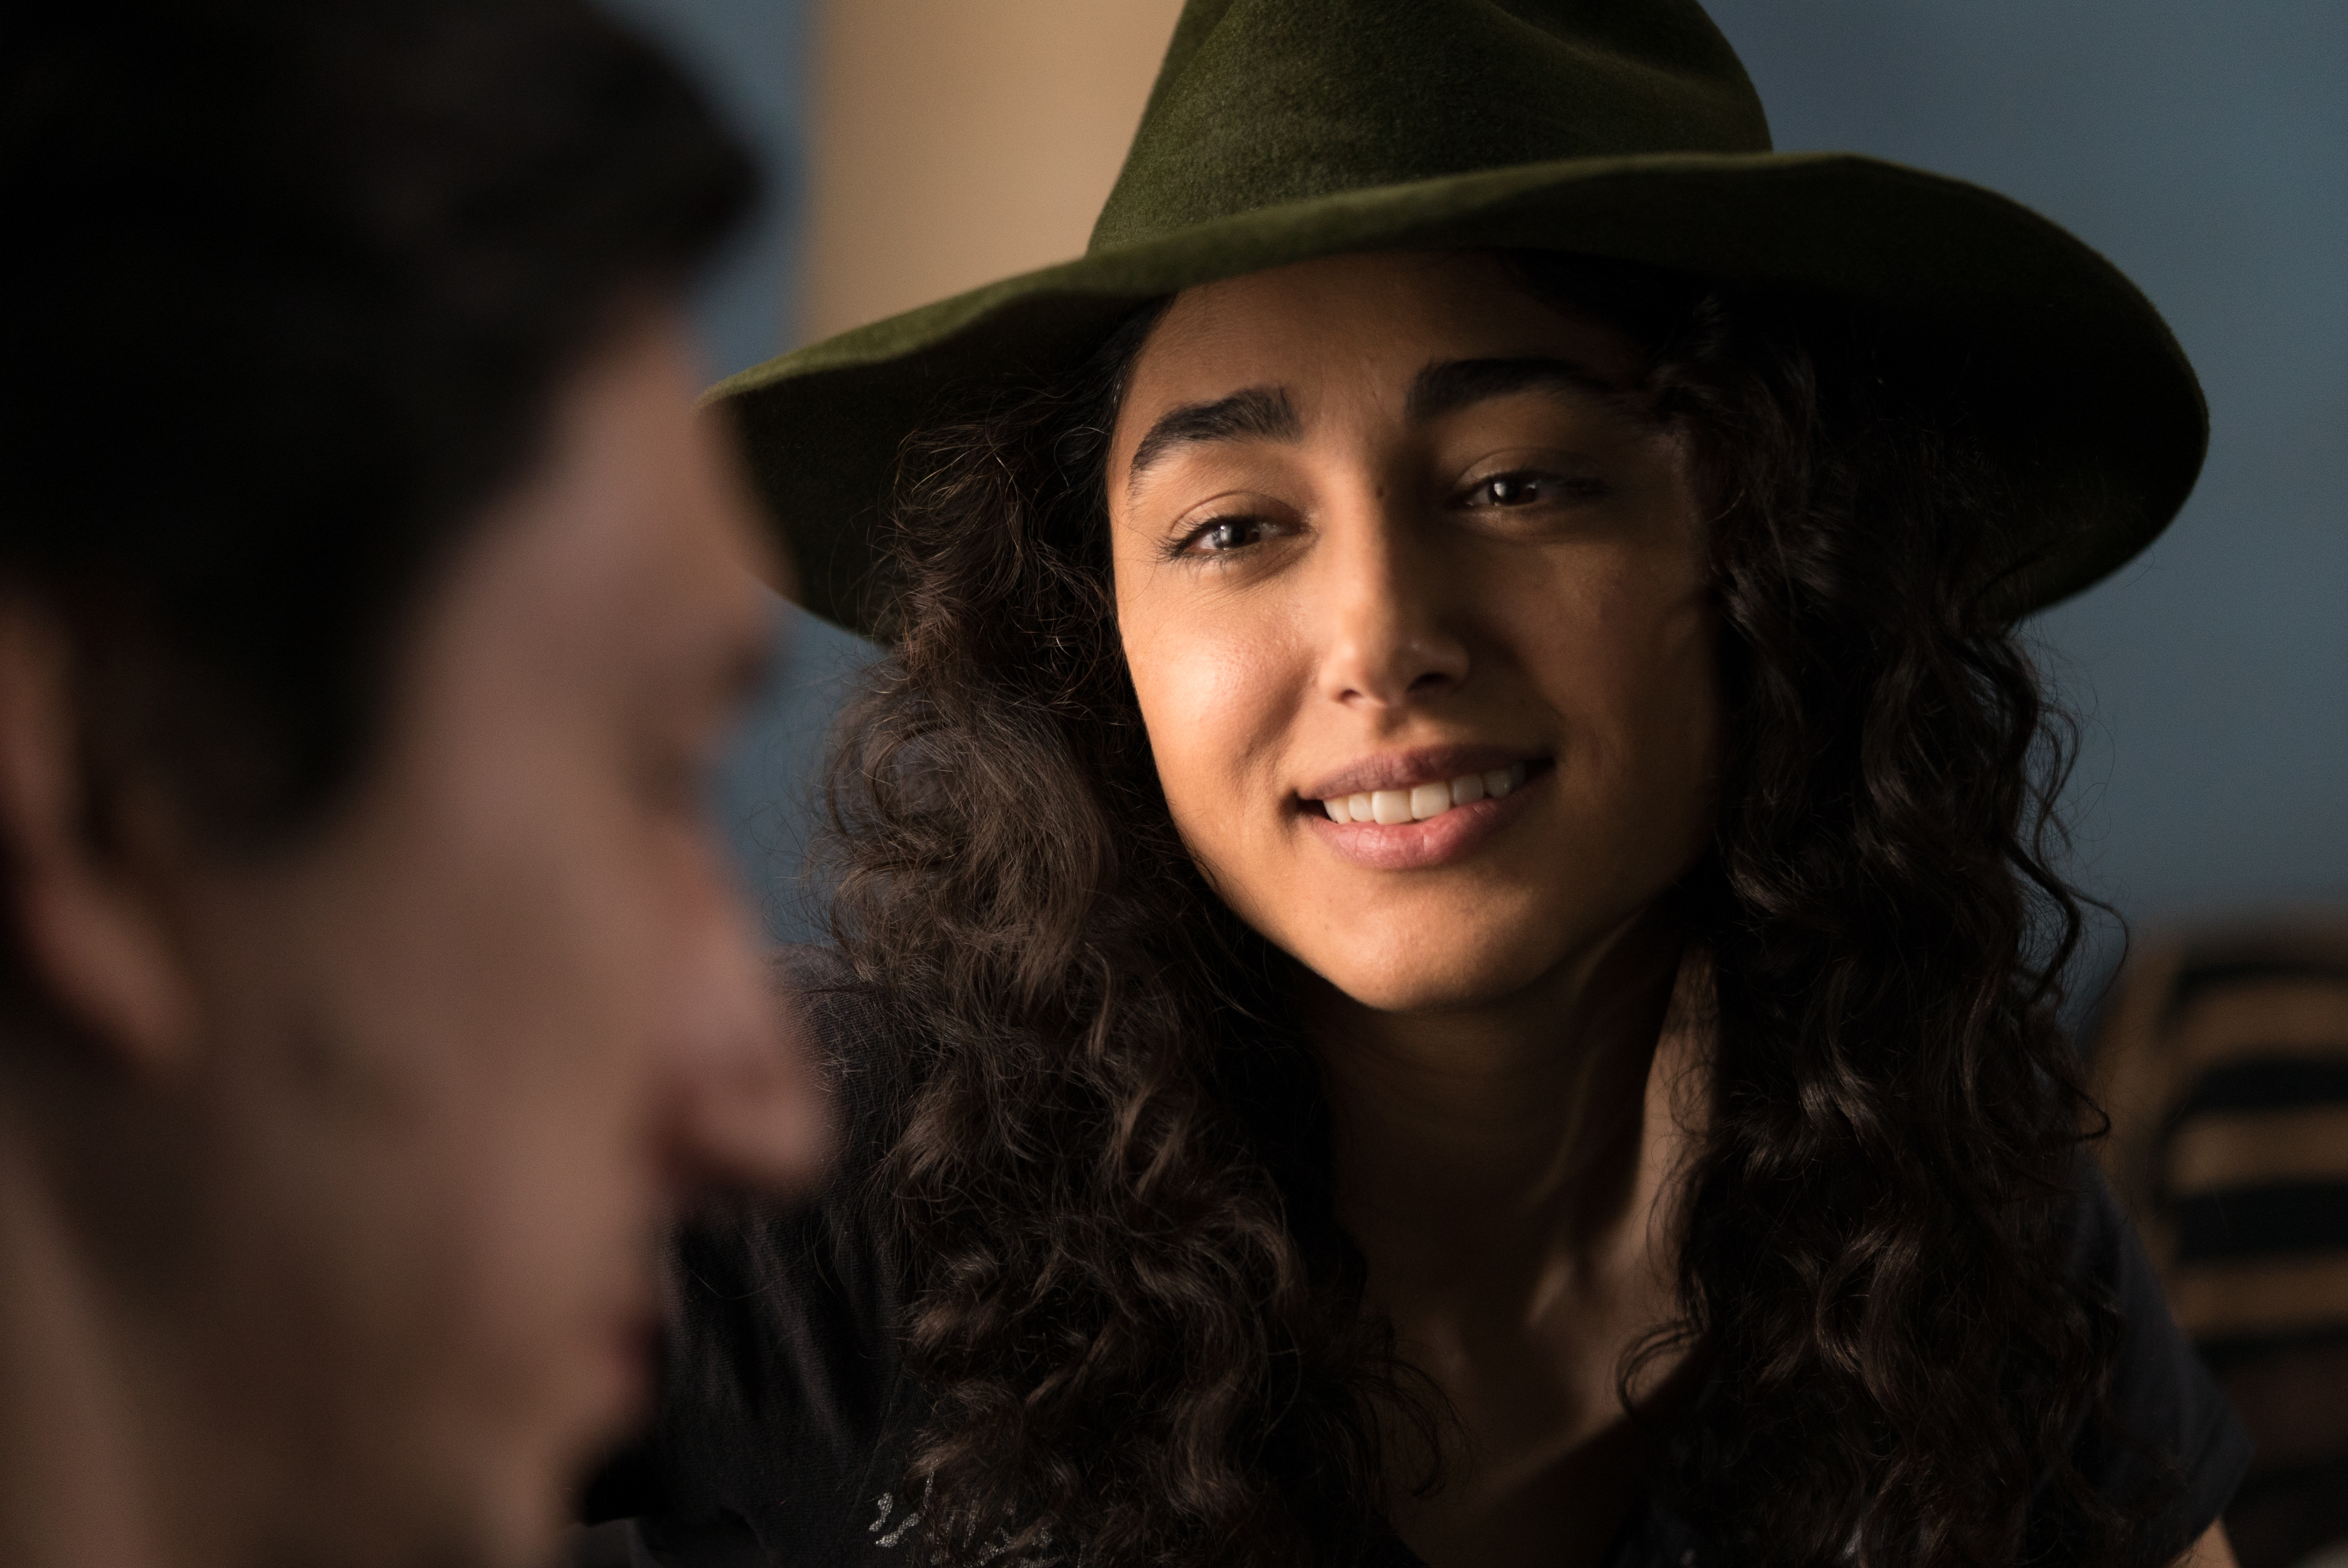 Pictures Golshifteh Farahani nude photos 2019